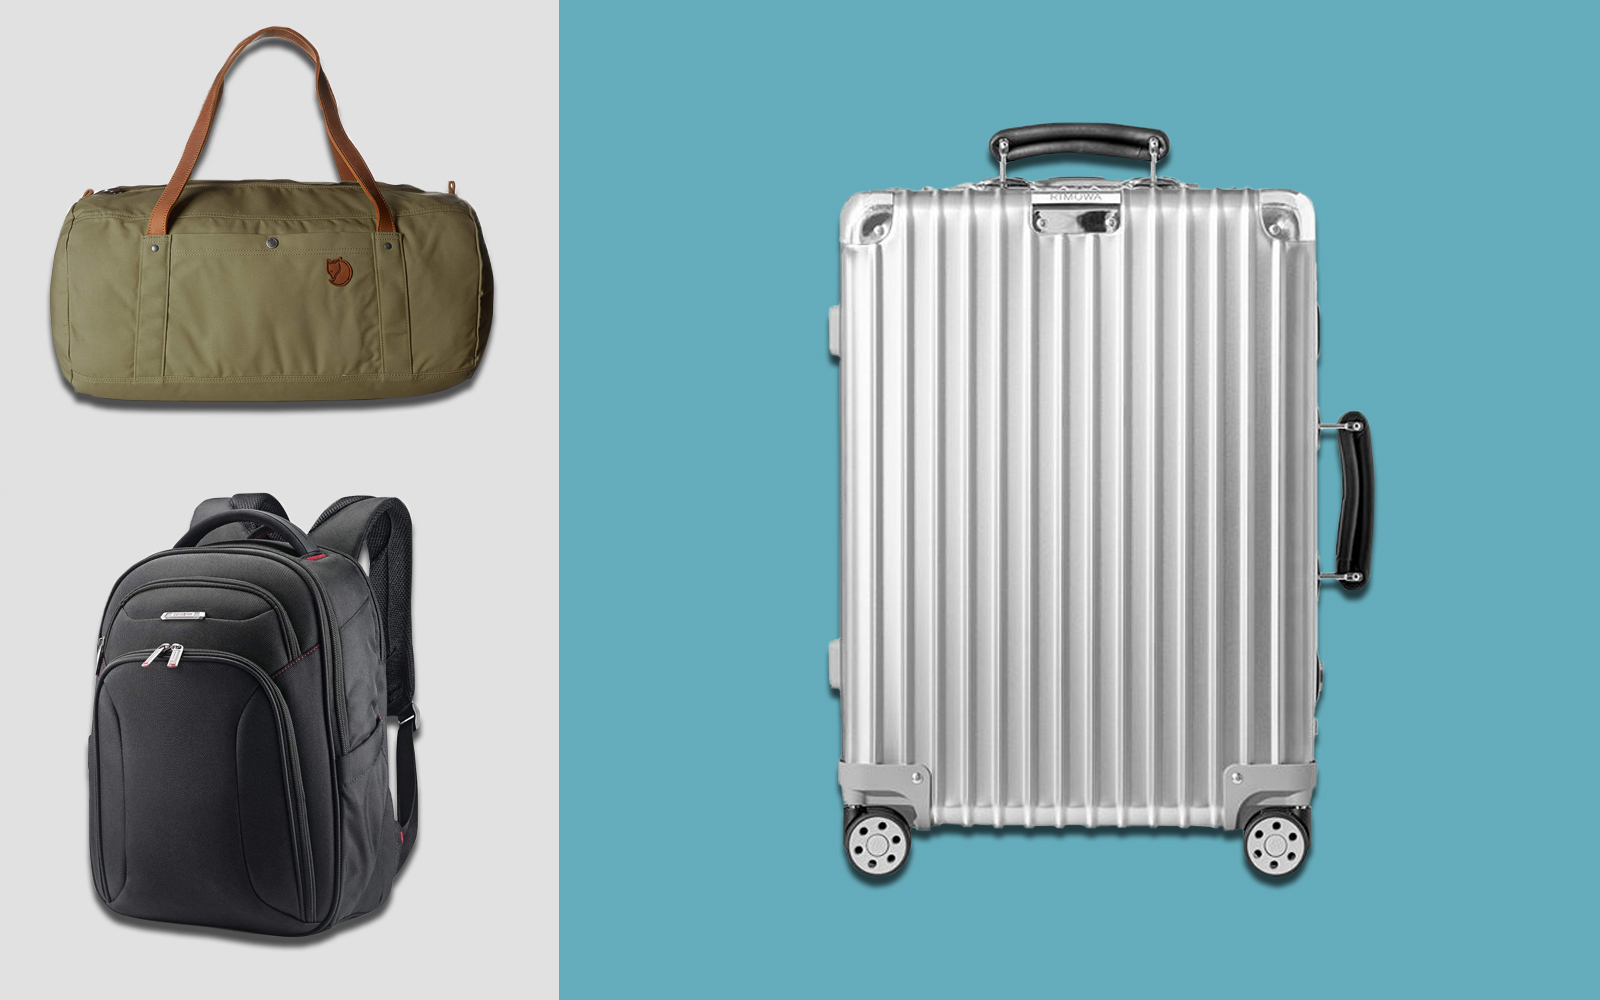 The Most Durable Carry-on and Checked Luggage